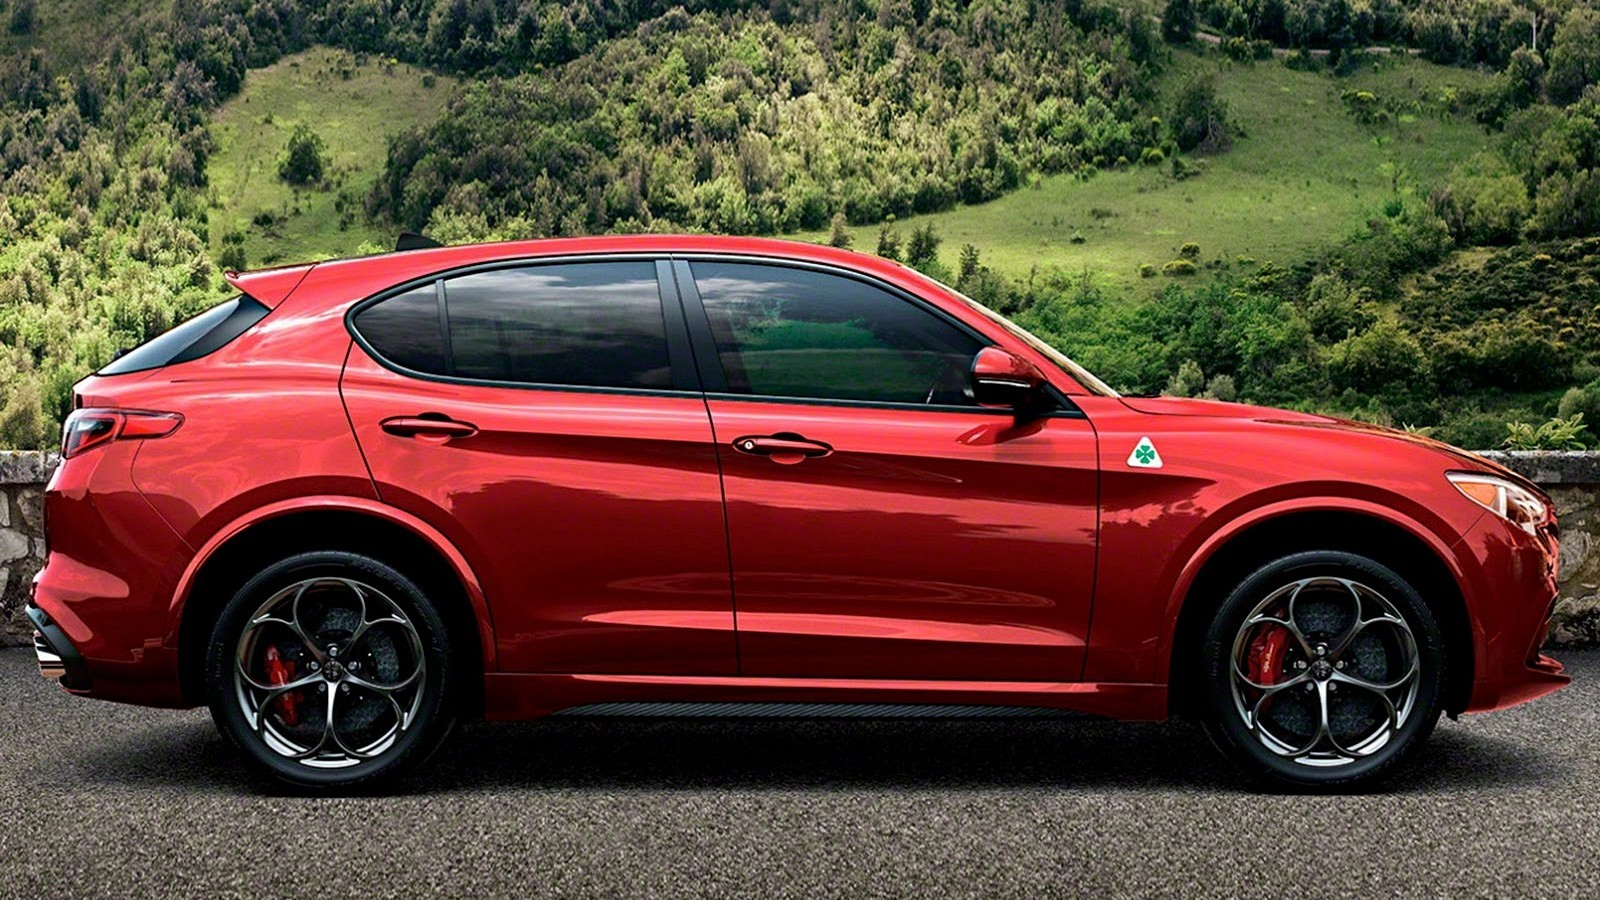 alfa romeo stelvio first edition nov suv ji m ete objedn vat cena je 1 2 milionu. Black Bedroom Furniture Sets. Home Design Ideas